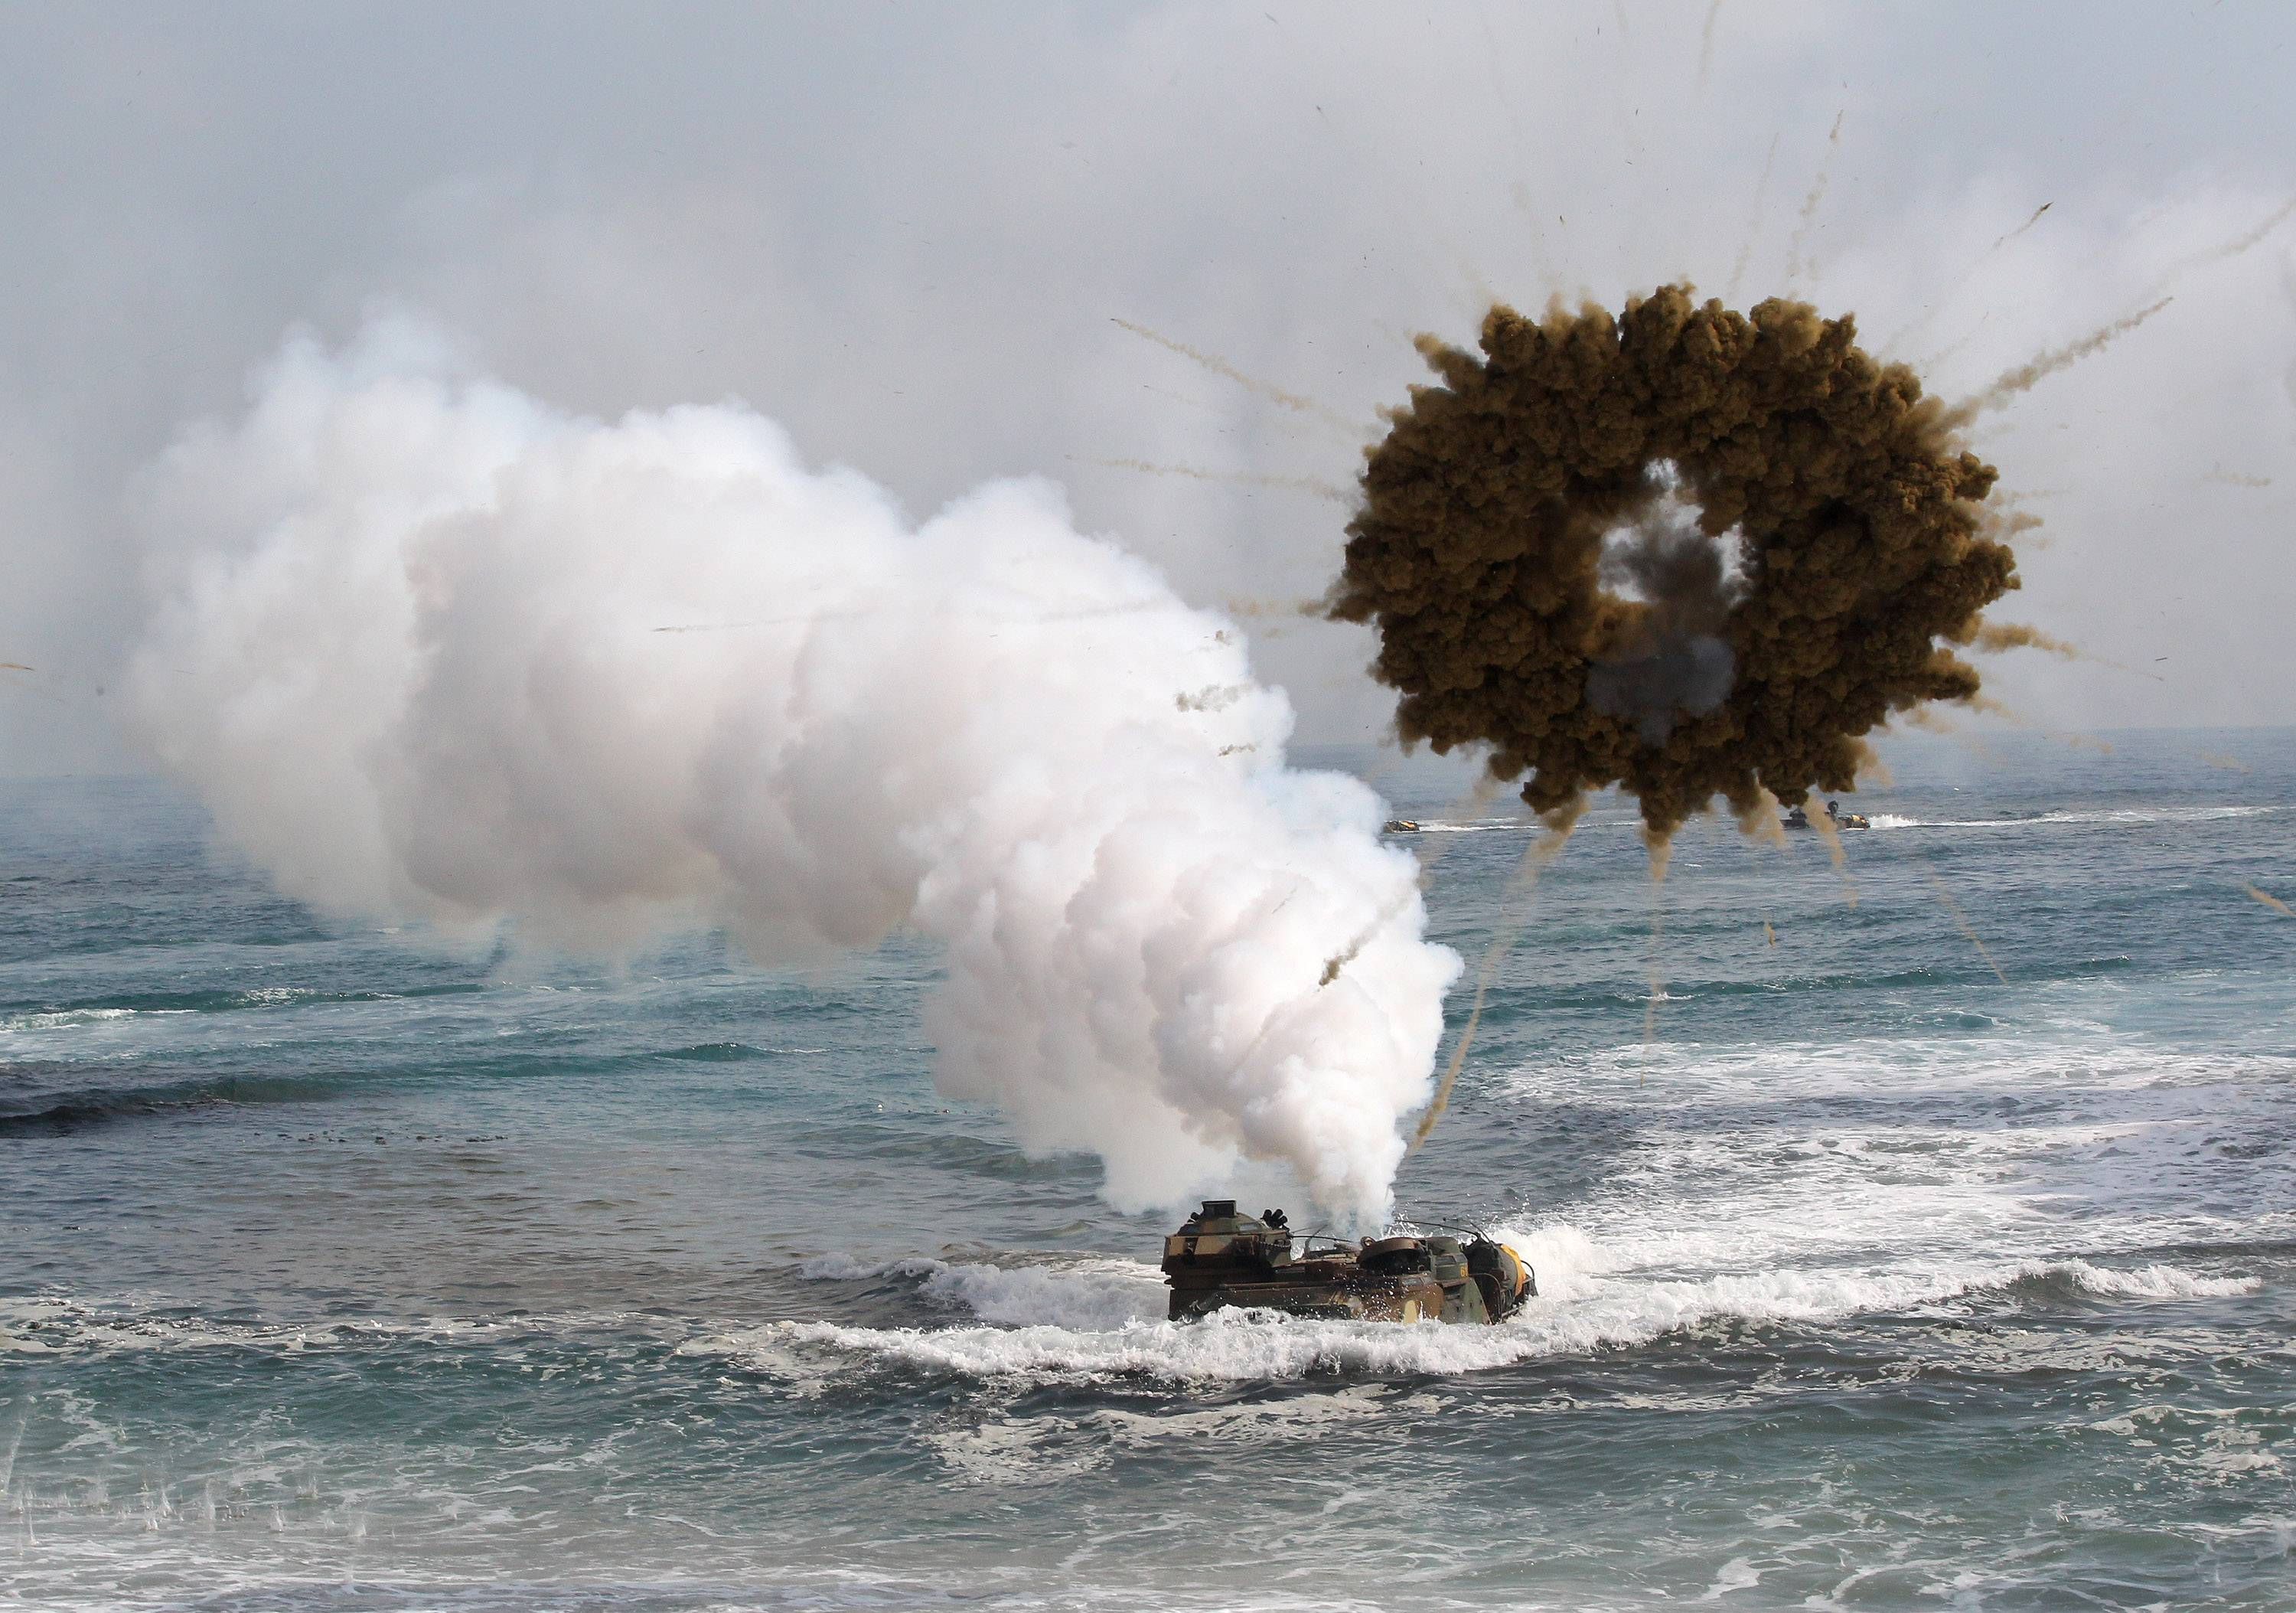 A South Korean marine LVT-7 landing craft sail to shores Monday through a smoke screen during the U.S.-South Korea joint landing exercises called Ssangyong, part of the Foal Eagle military exercises, in Pohang, South Korea. South Korea said North Korea has announced plans to conduct live-fire drills near the rivals' disputed western sea boundary. The planned drills Monday come after an increase in threatening rhetoric from Pyongyang and a series of rocket and ballistic missile launches in an apparent protest against the annual military exercises by Seoul and Washington.